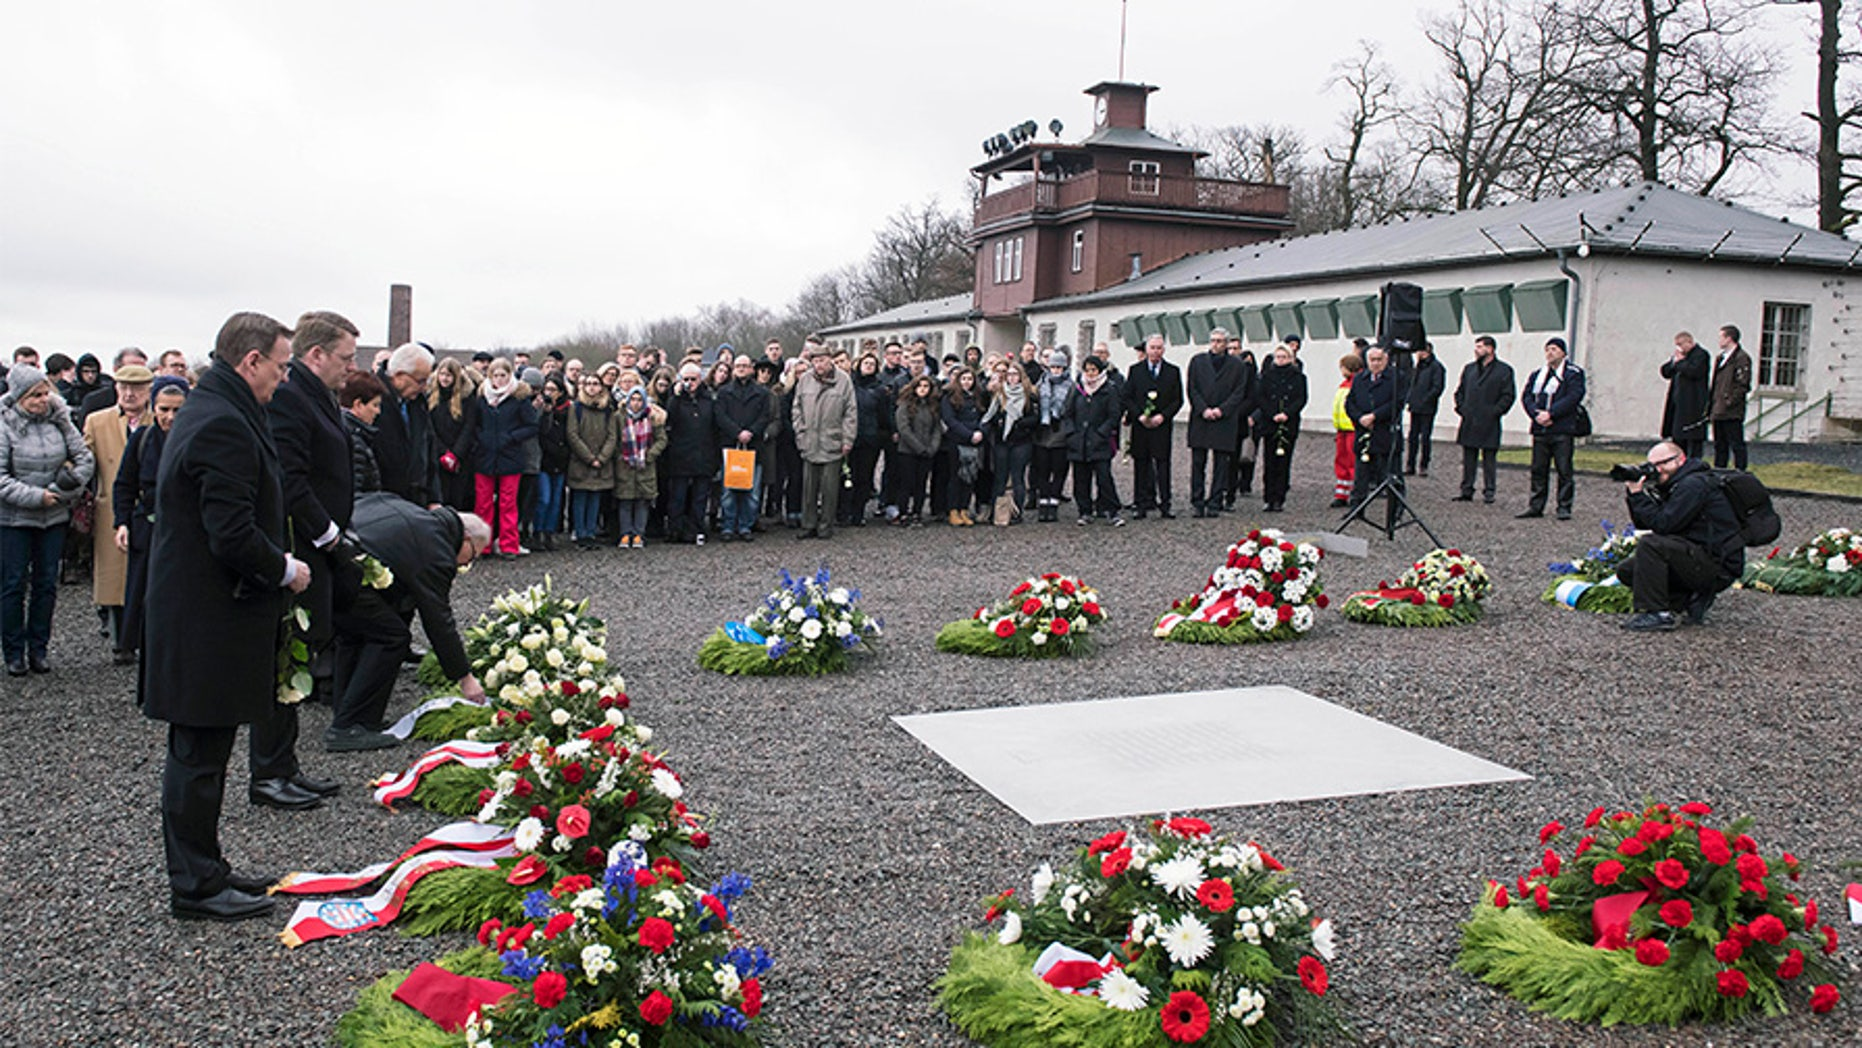 People mourn on occasion of the international Holocaust remembrance day (Jan.27) in the former Nazi concentration camp Buchenwald near Weimar, Germany, Friday.